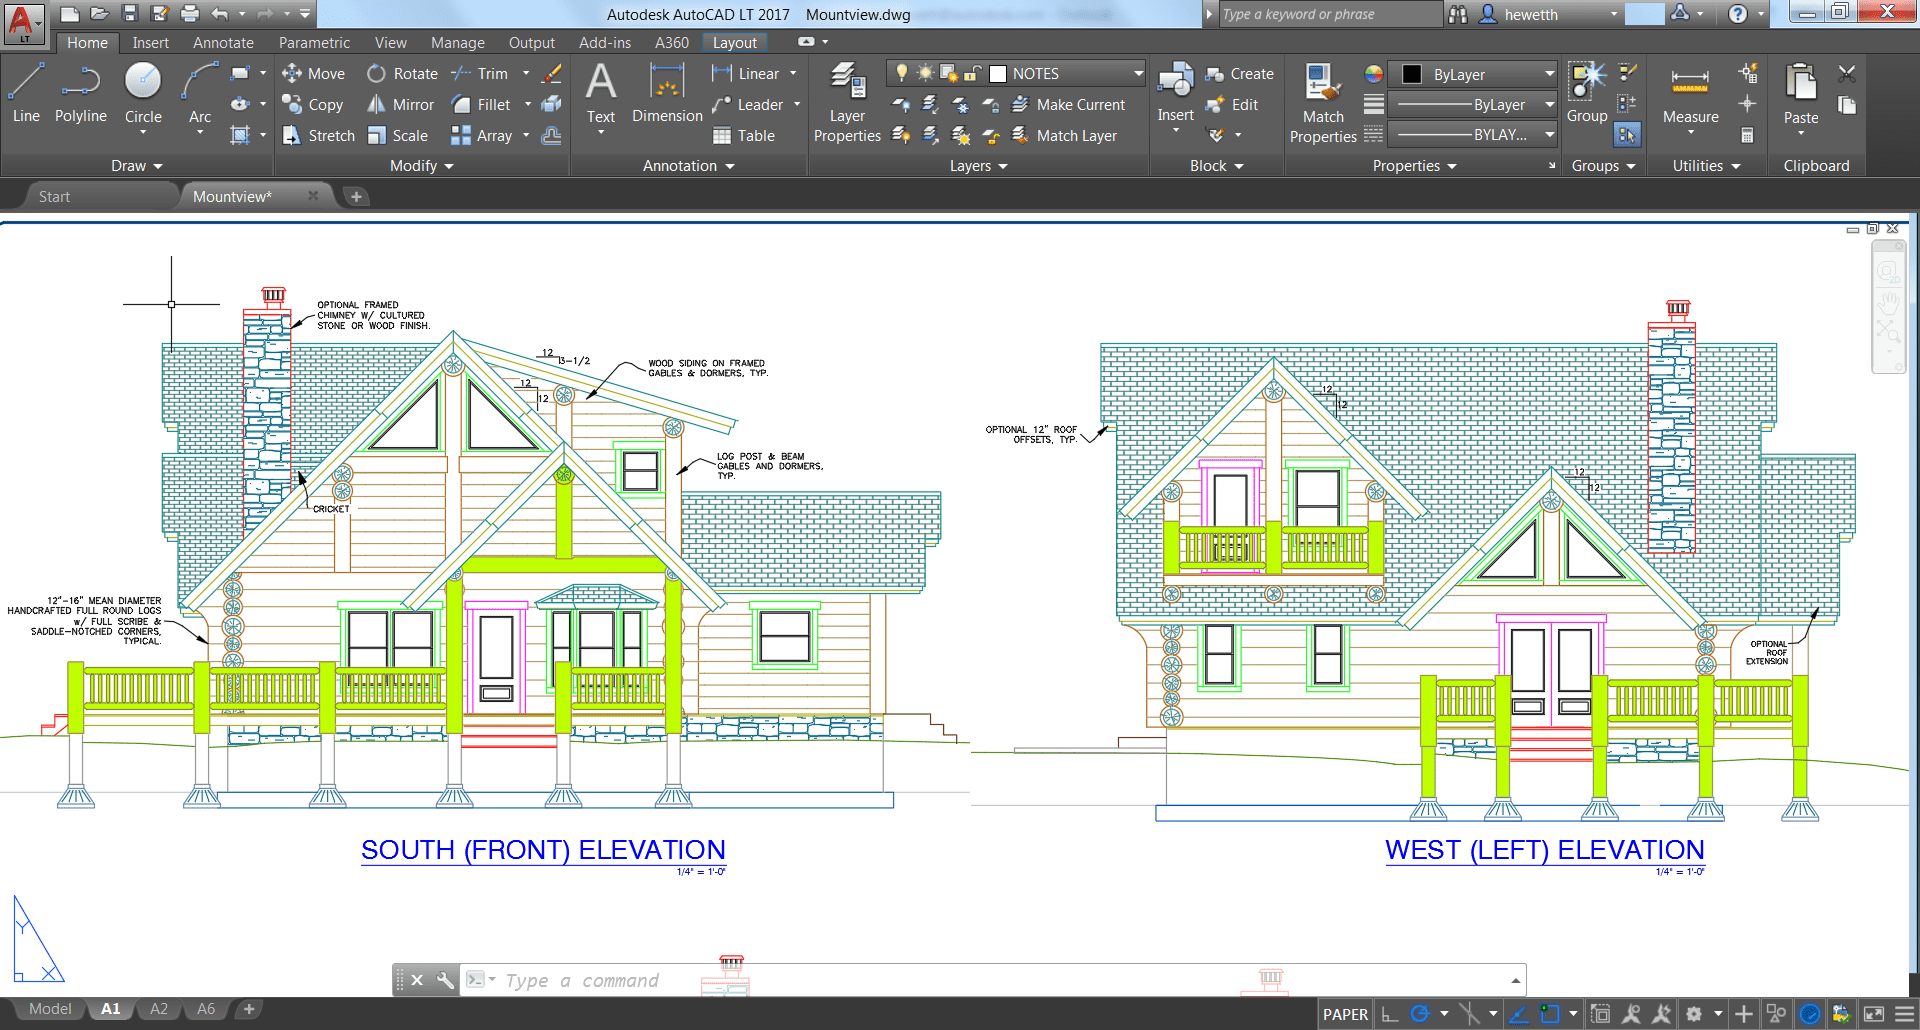 Smart House Wiring Auto Electrical Diagram Fenwal Ignition Module 35 655500 001 Autocad Lt 2017 Announcement